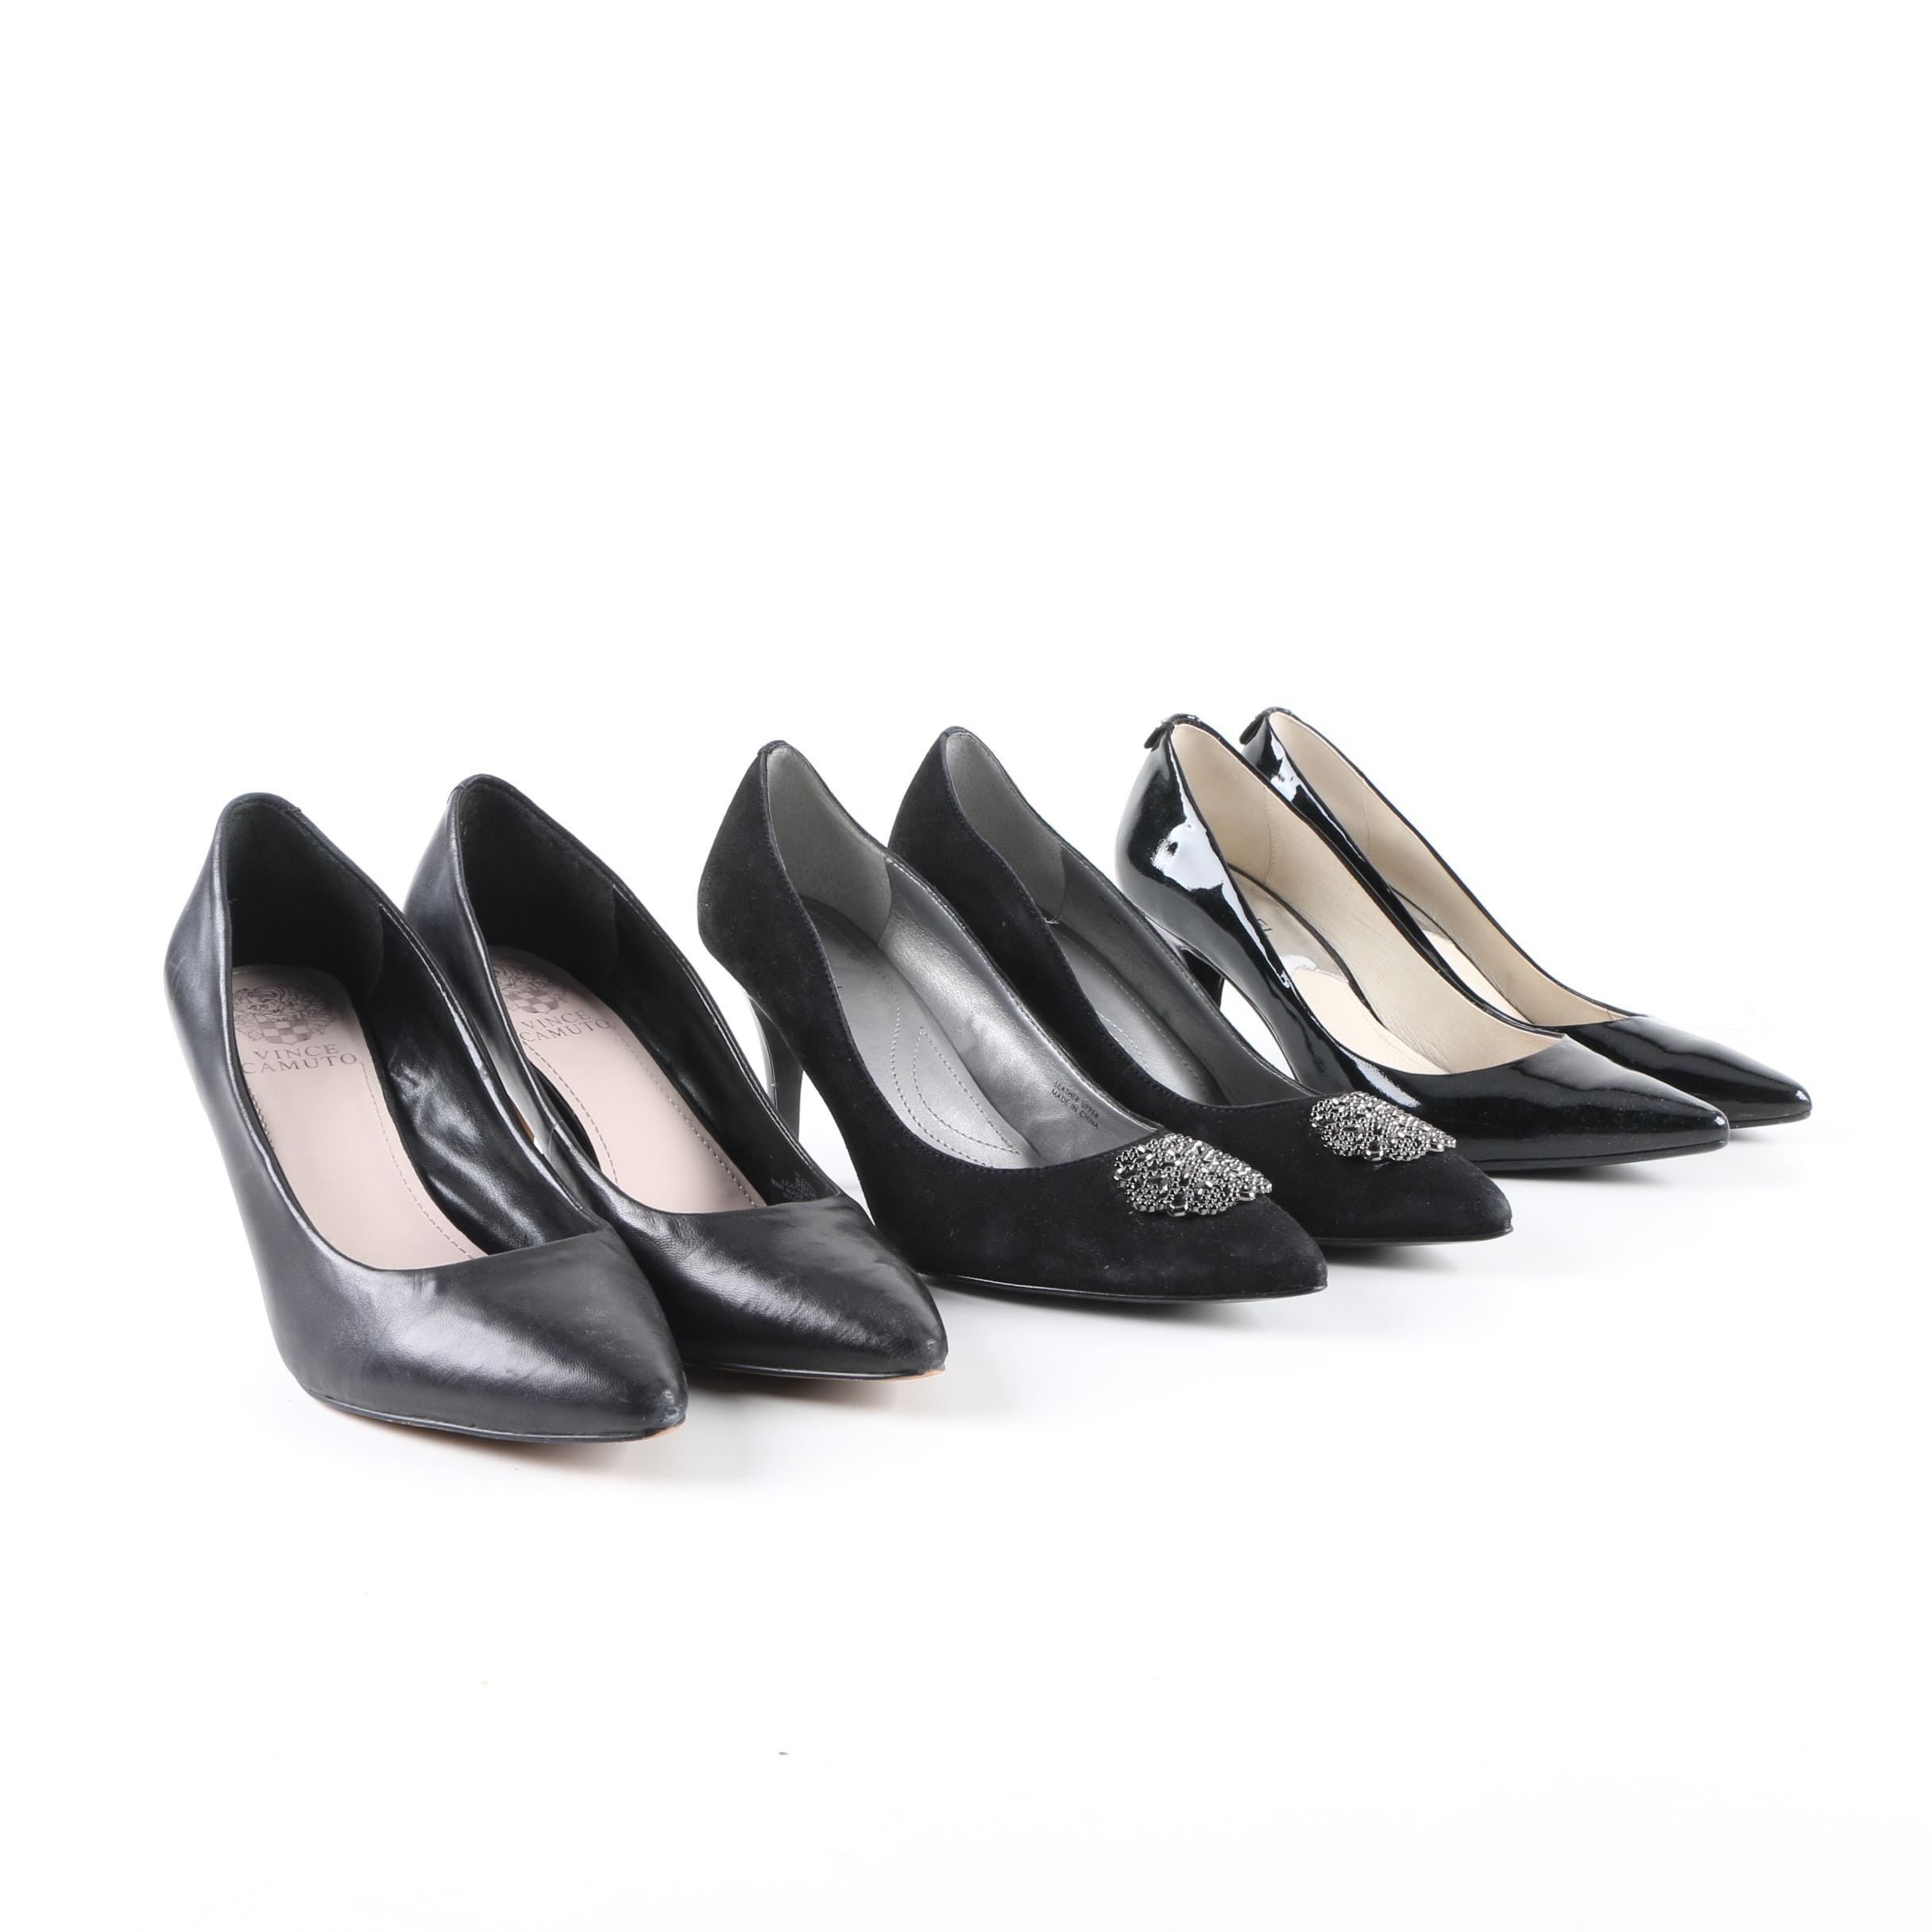 Black Pumps Including MICHAEL Michael Kors, Tahari and Vince Camuto